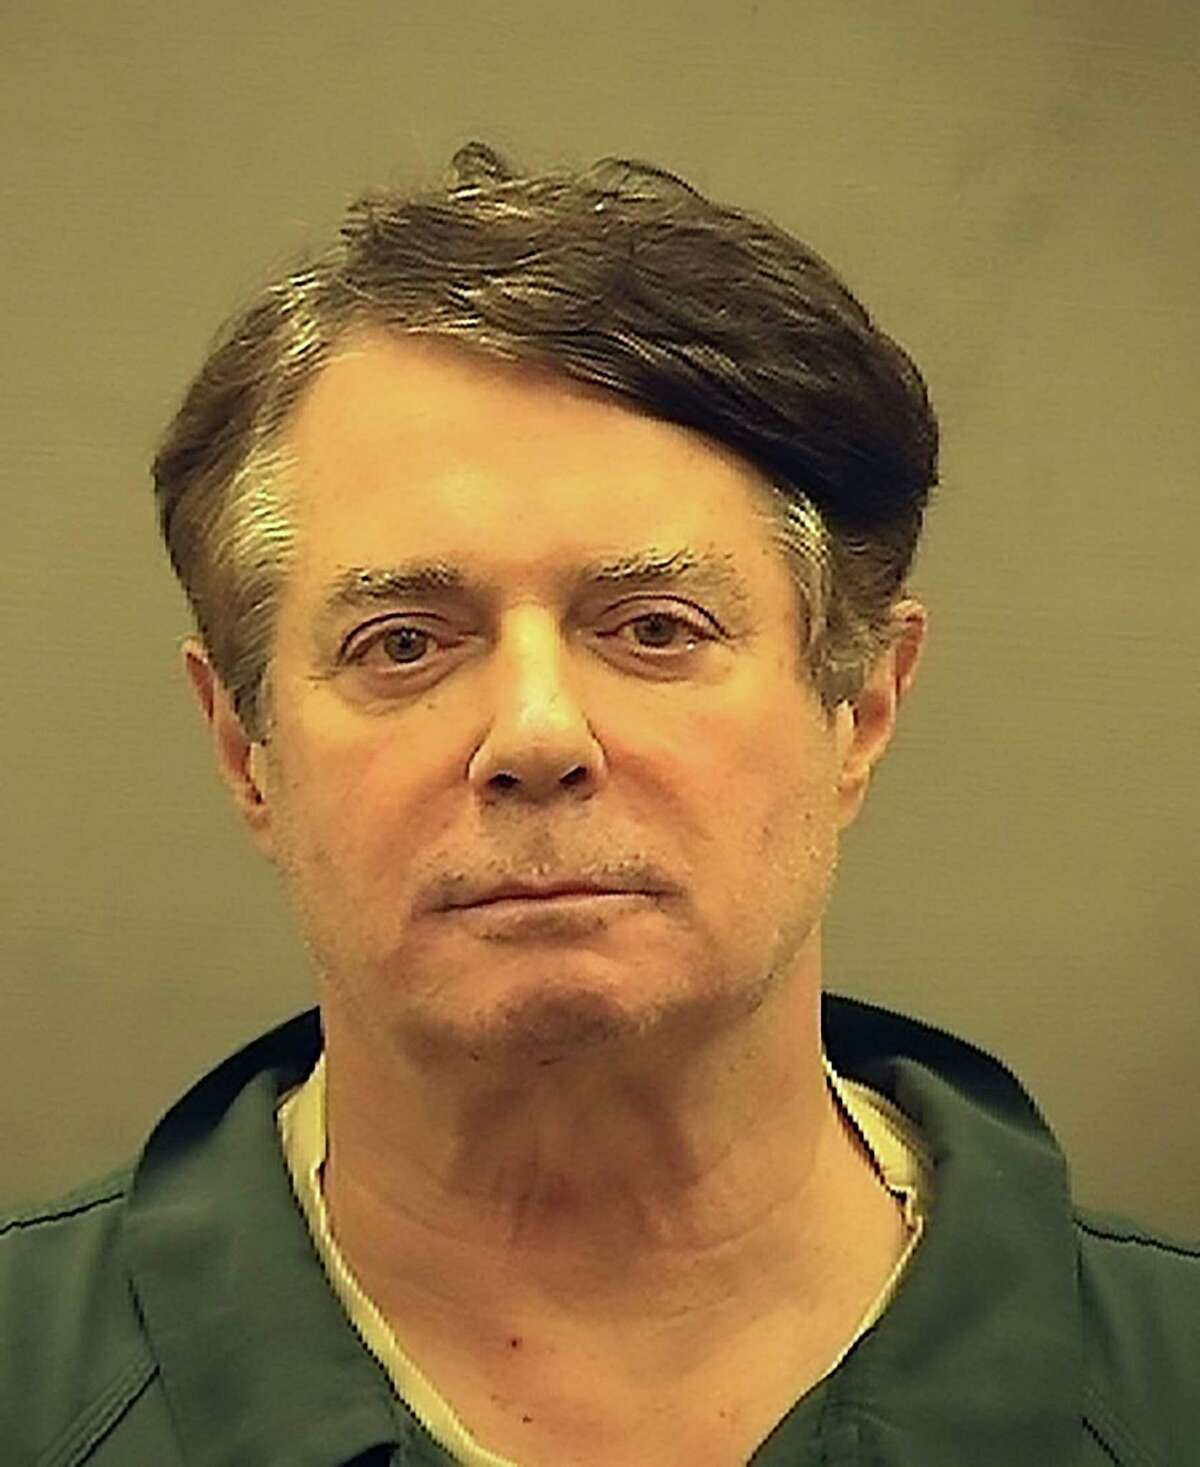 """This photograph obtained courtesy of the Alexandria Sheriff's Office, Paul Manafort, Donald Trump's former campaign chief, is seen in this booking photo July 12, 2018 after his transfer to the Alexandria Detention Center in Alexandria, Virginia. Manafort, who is facing trial later this year on money laundering charges involving his work for Ukraine that predated the 2016 presidential election, is one of 20 people and three companies already indicted by Special Counsel Robert Mueller in the investigation into possible collusion with Russia by the Trump campaign, as well as possible obstruction of justice. / AFP PHOTO / ALEXANDRIA SHERIFF'S OFFICE / HO / == RESTRICTED TO EDITORIAL USE / MANDATORY CREDIT: """"AFP PHOTO / ALEXANDRIA SHERIFF'S OFFICE / HANDOUT"""" / NO MARKETING / NO ADVERTISING CAMPAIGNS / DISTRIBUTED AS A SERVICE TO CLIENTS ==HO/AFP/Getty Images"""